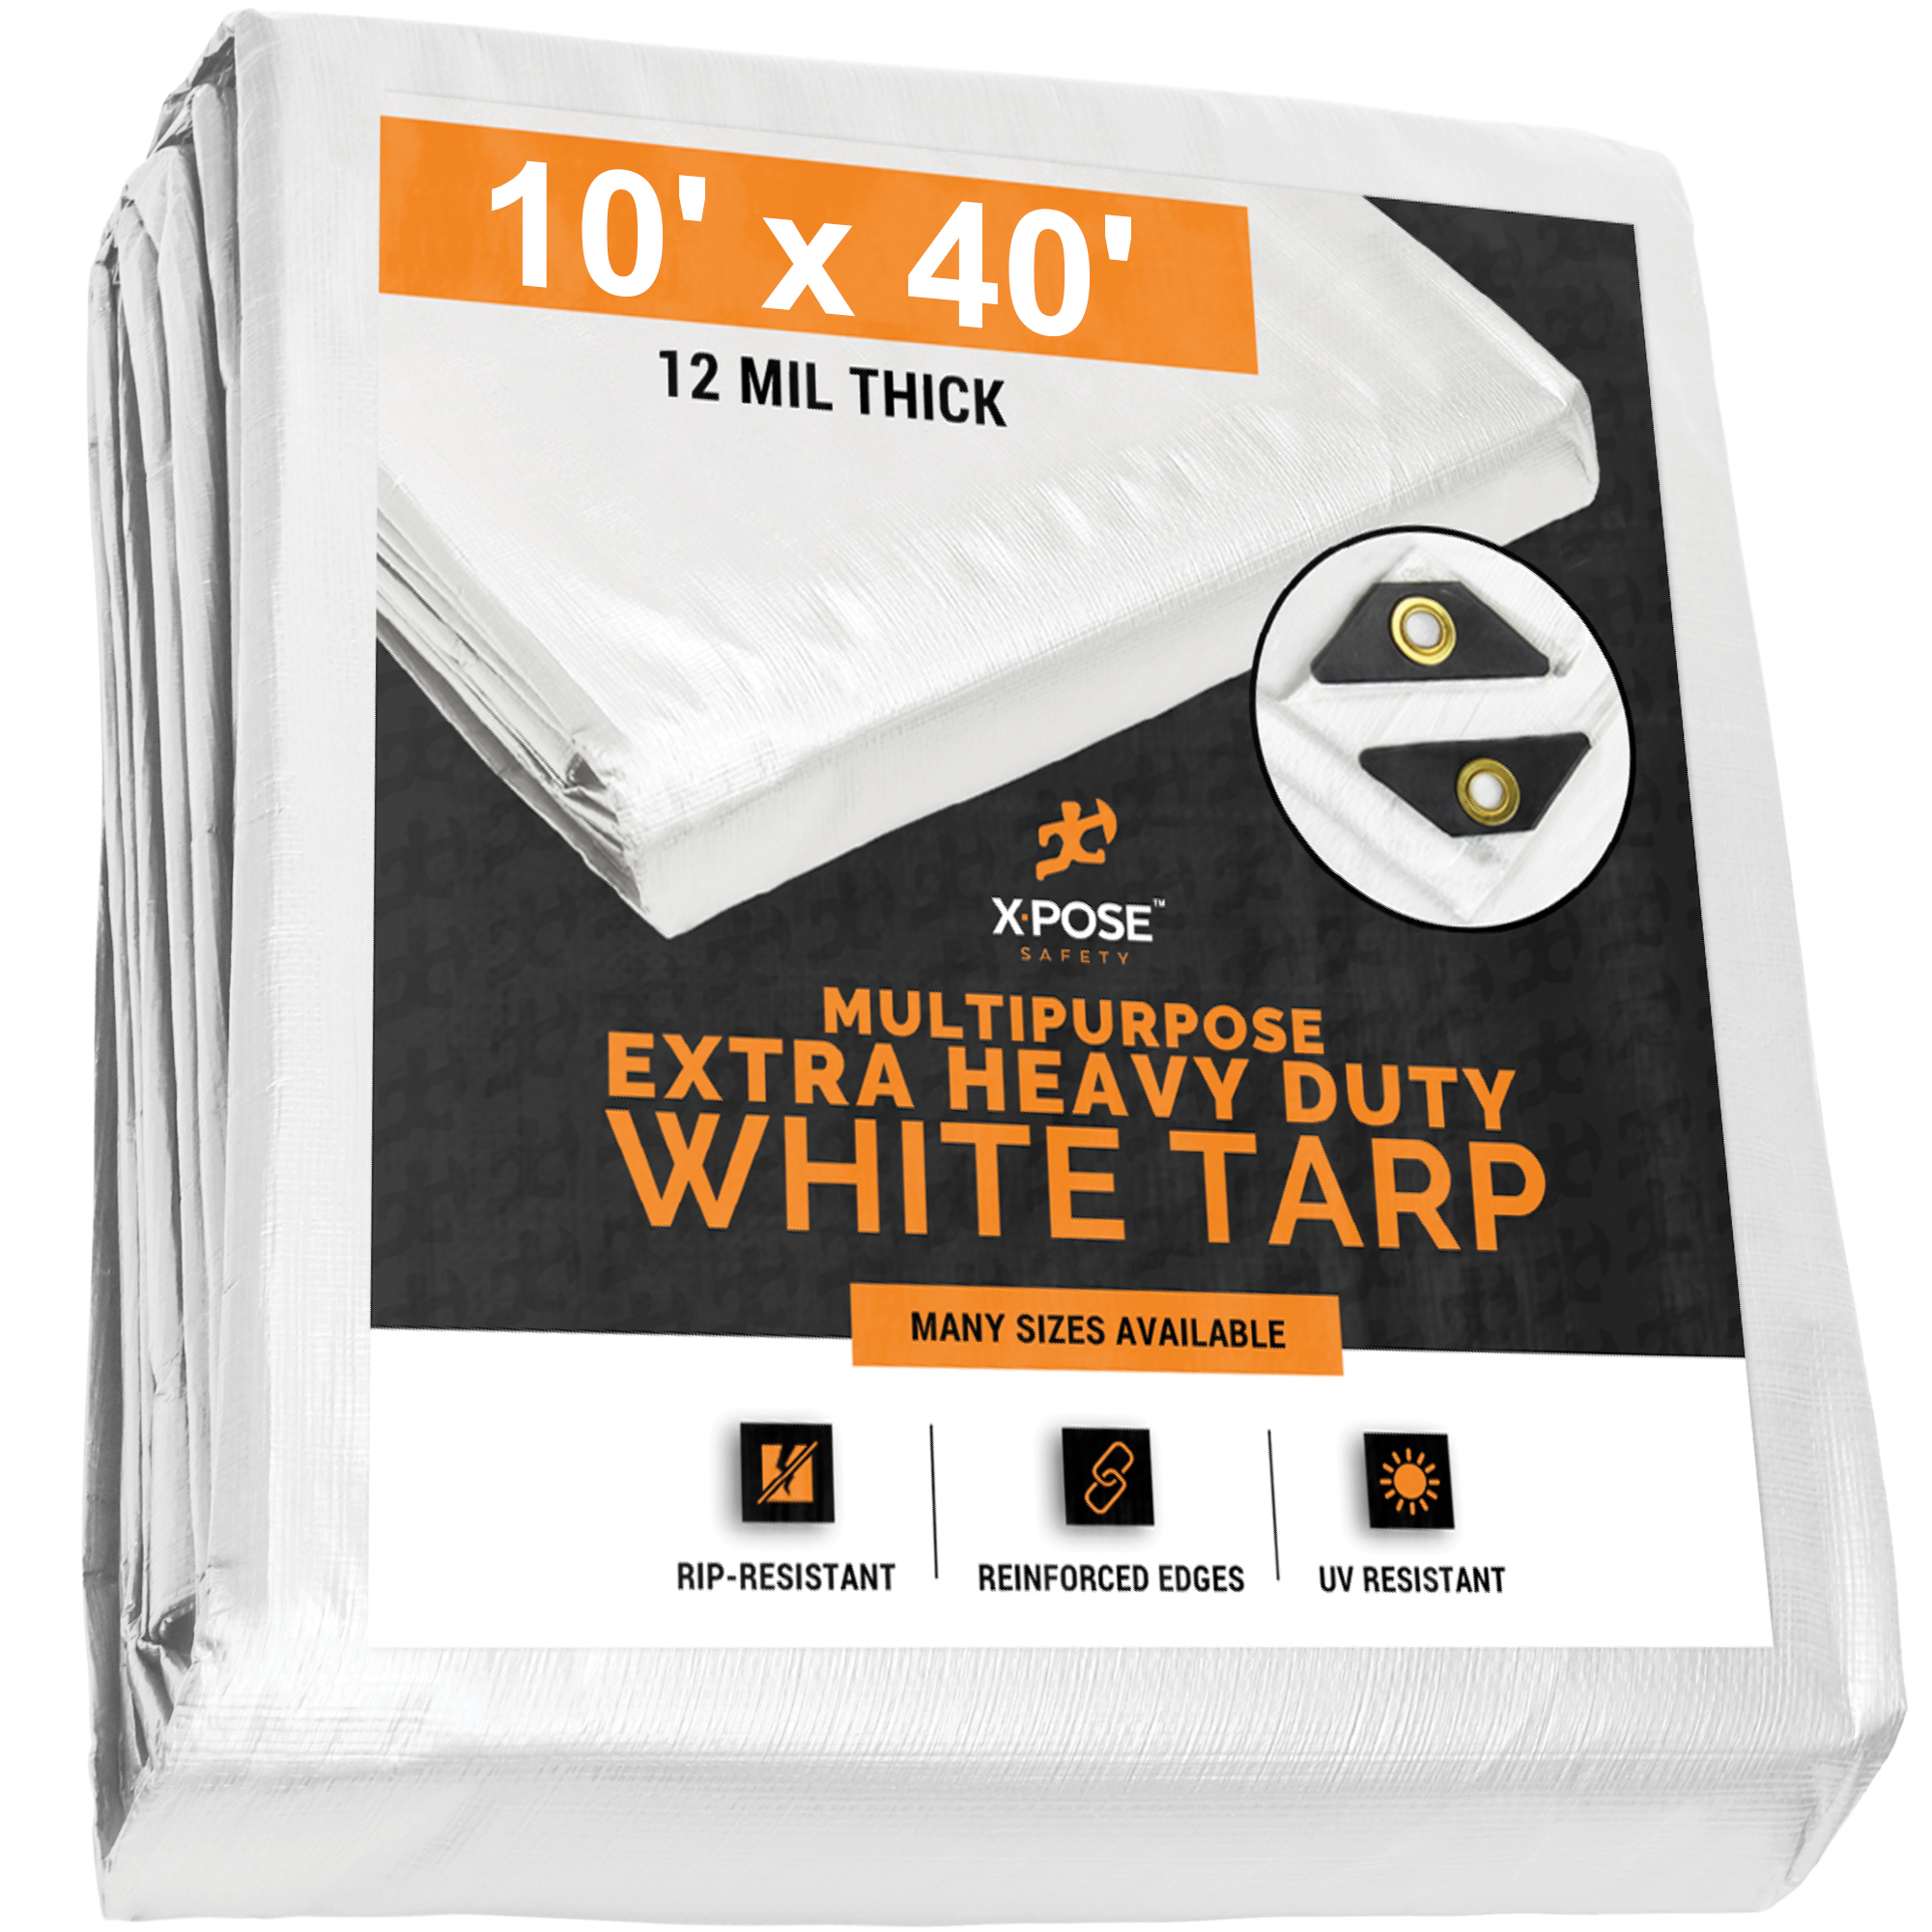 Heavy Duty White Poly Tarp 10' x 40' Multipurpose Protective Cover - Durable, Waterproof, Weather Proof, Rip and Tear Resistant - Extra Thick 12 Mil Polyethylene WHD-1040-X